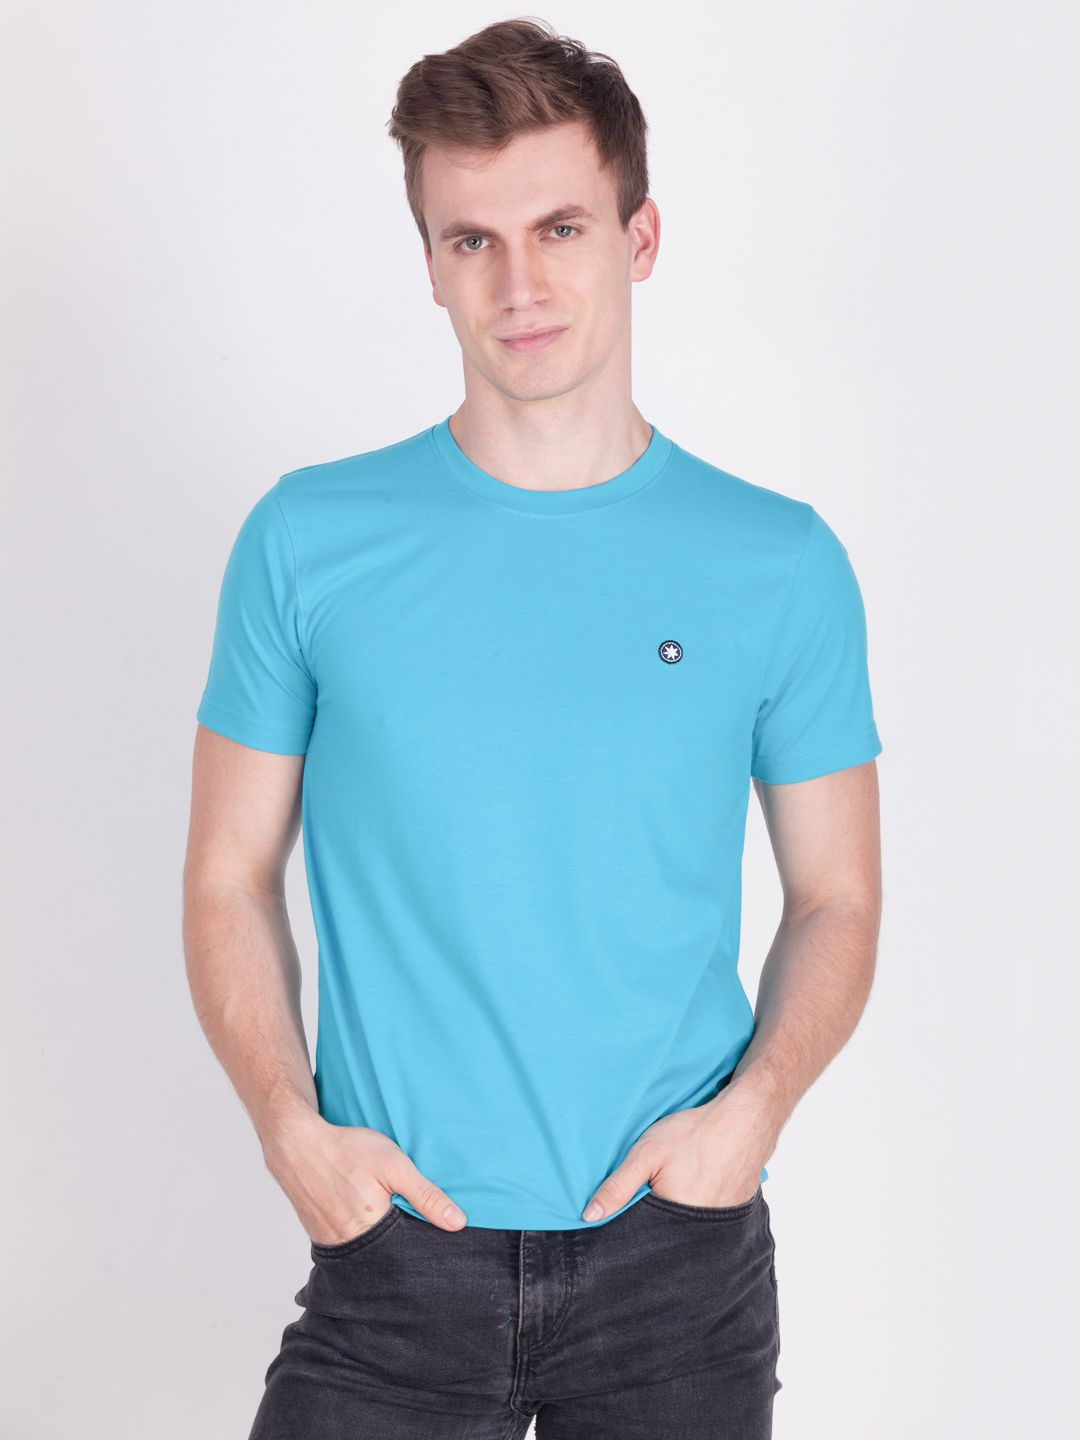 Force Go Wear Blue Round T-Shirt Pack of 1